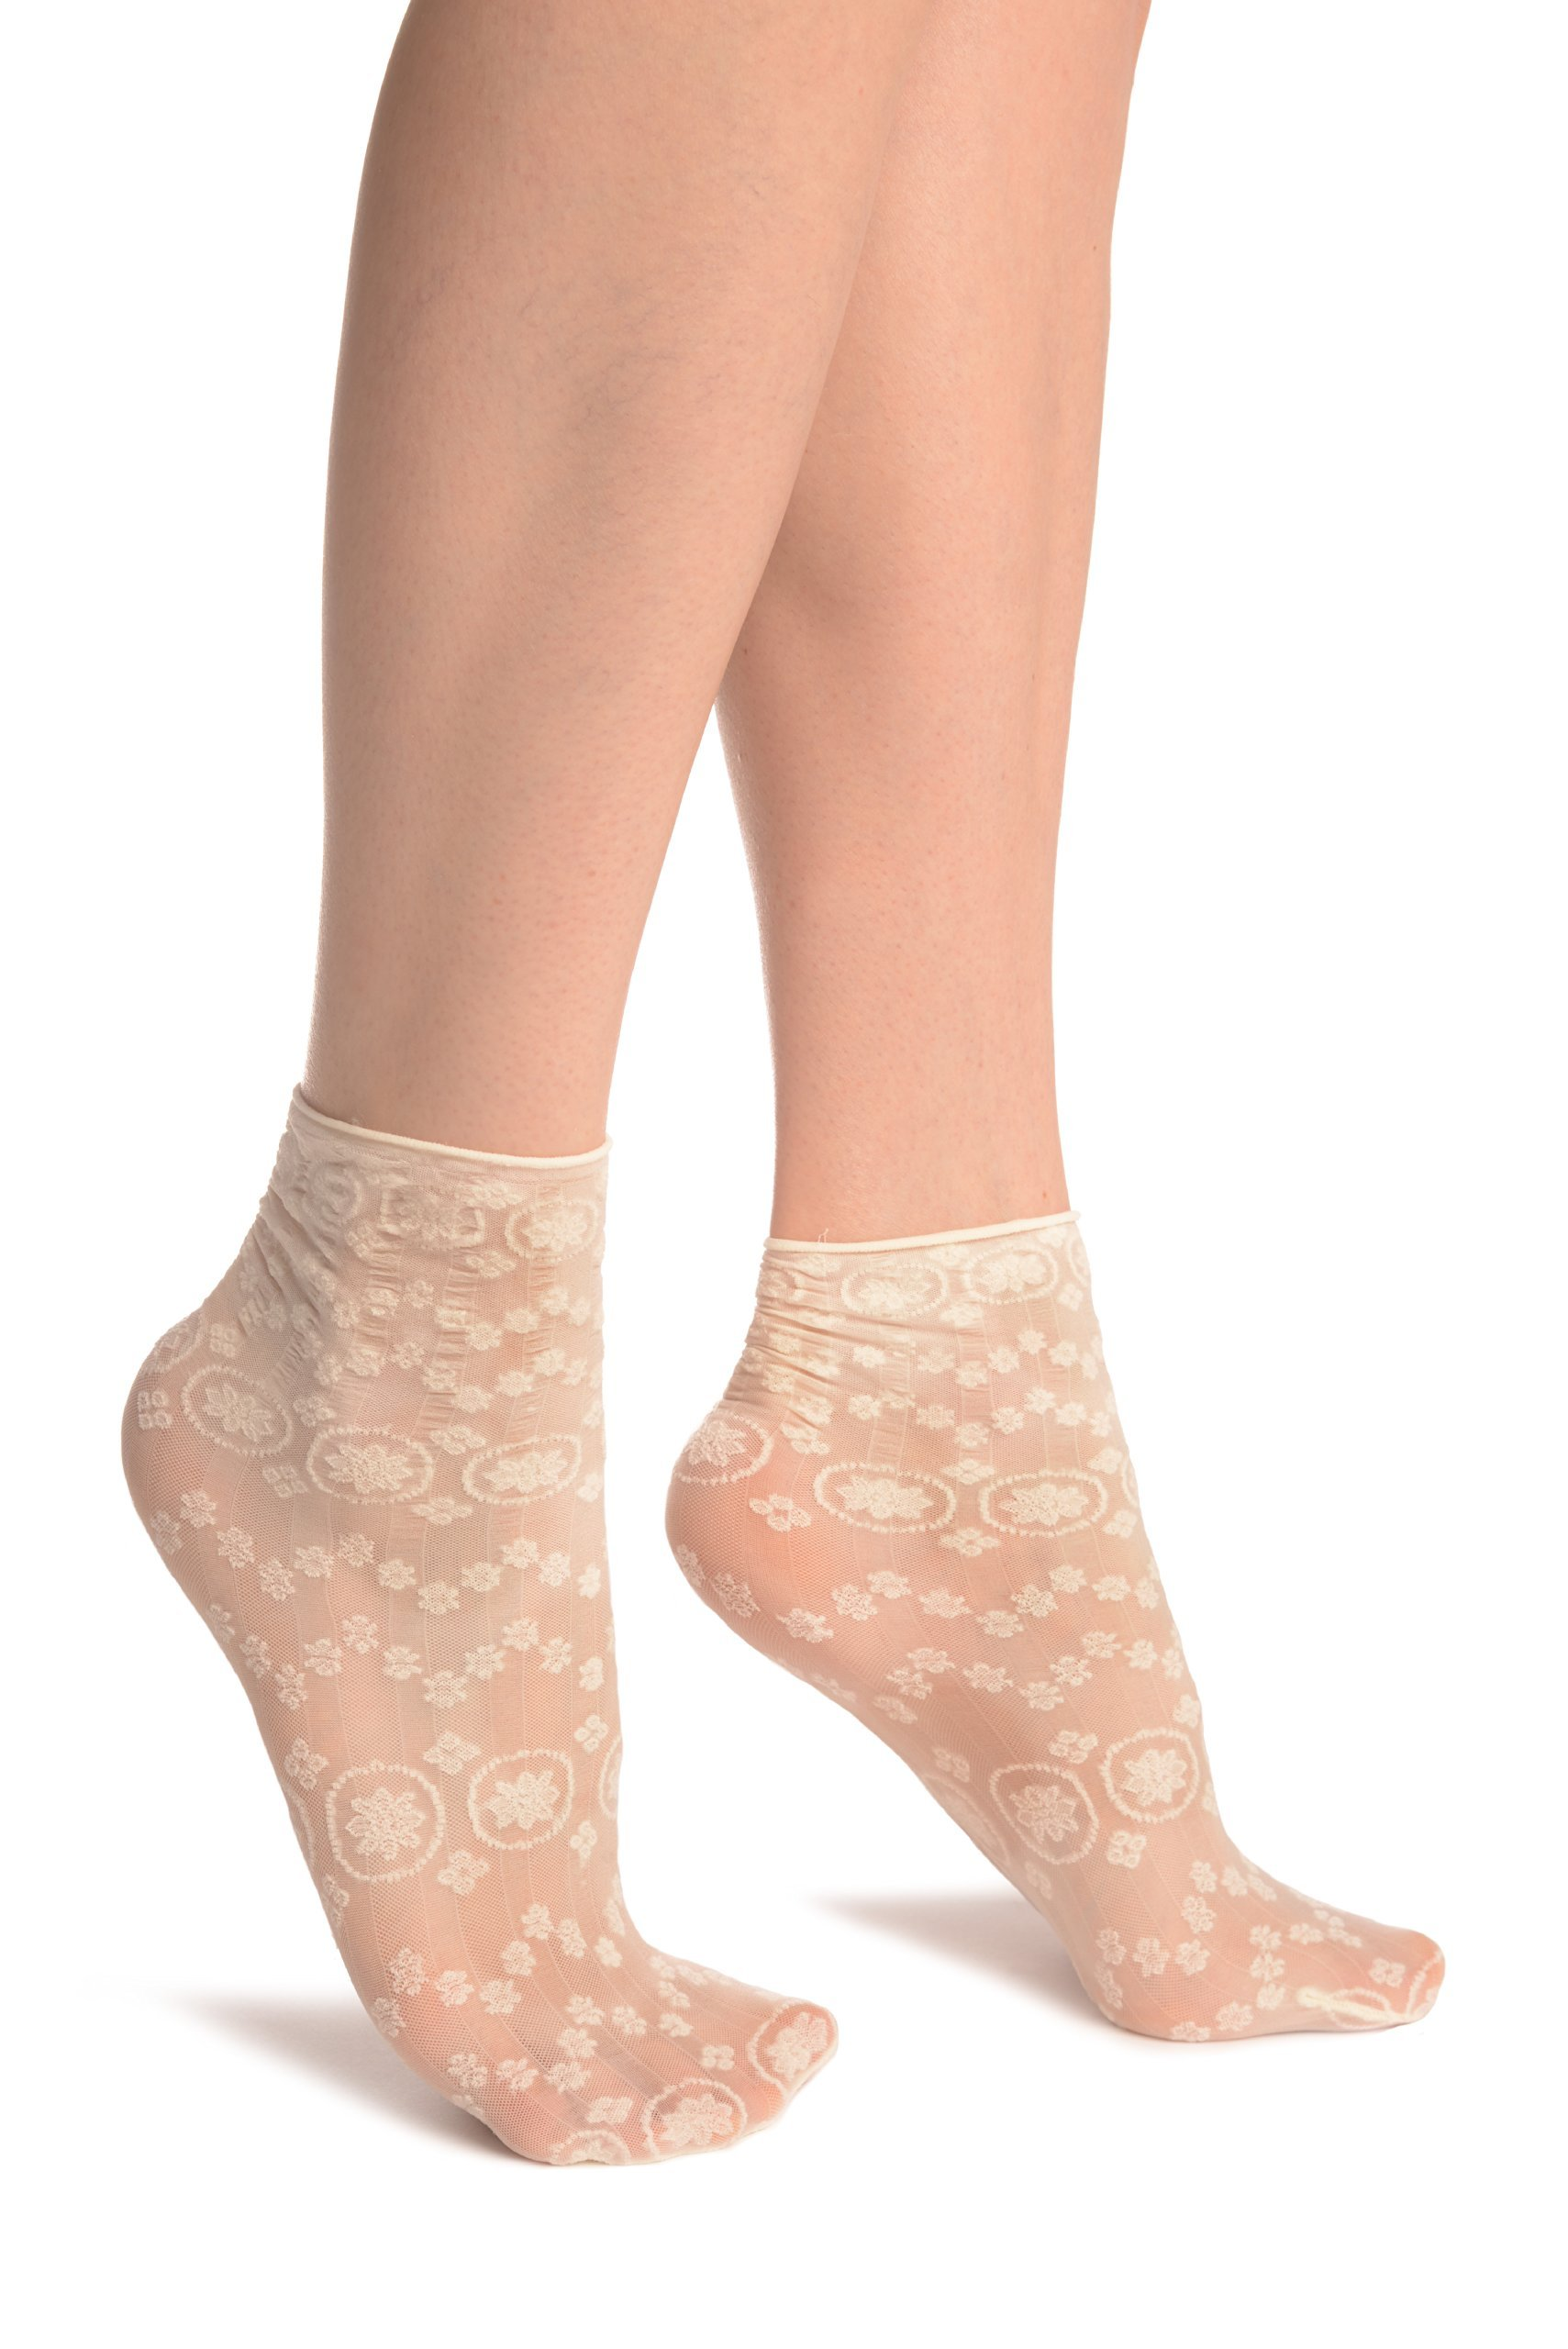 Cream Water Lilly With Comfortable Top Ankle High Socks - Socks